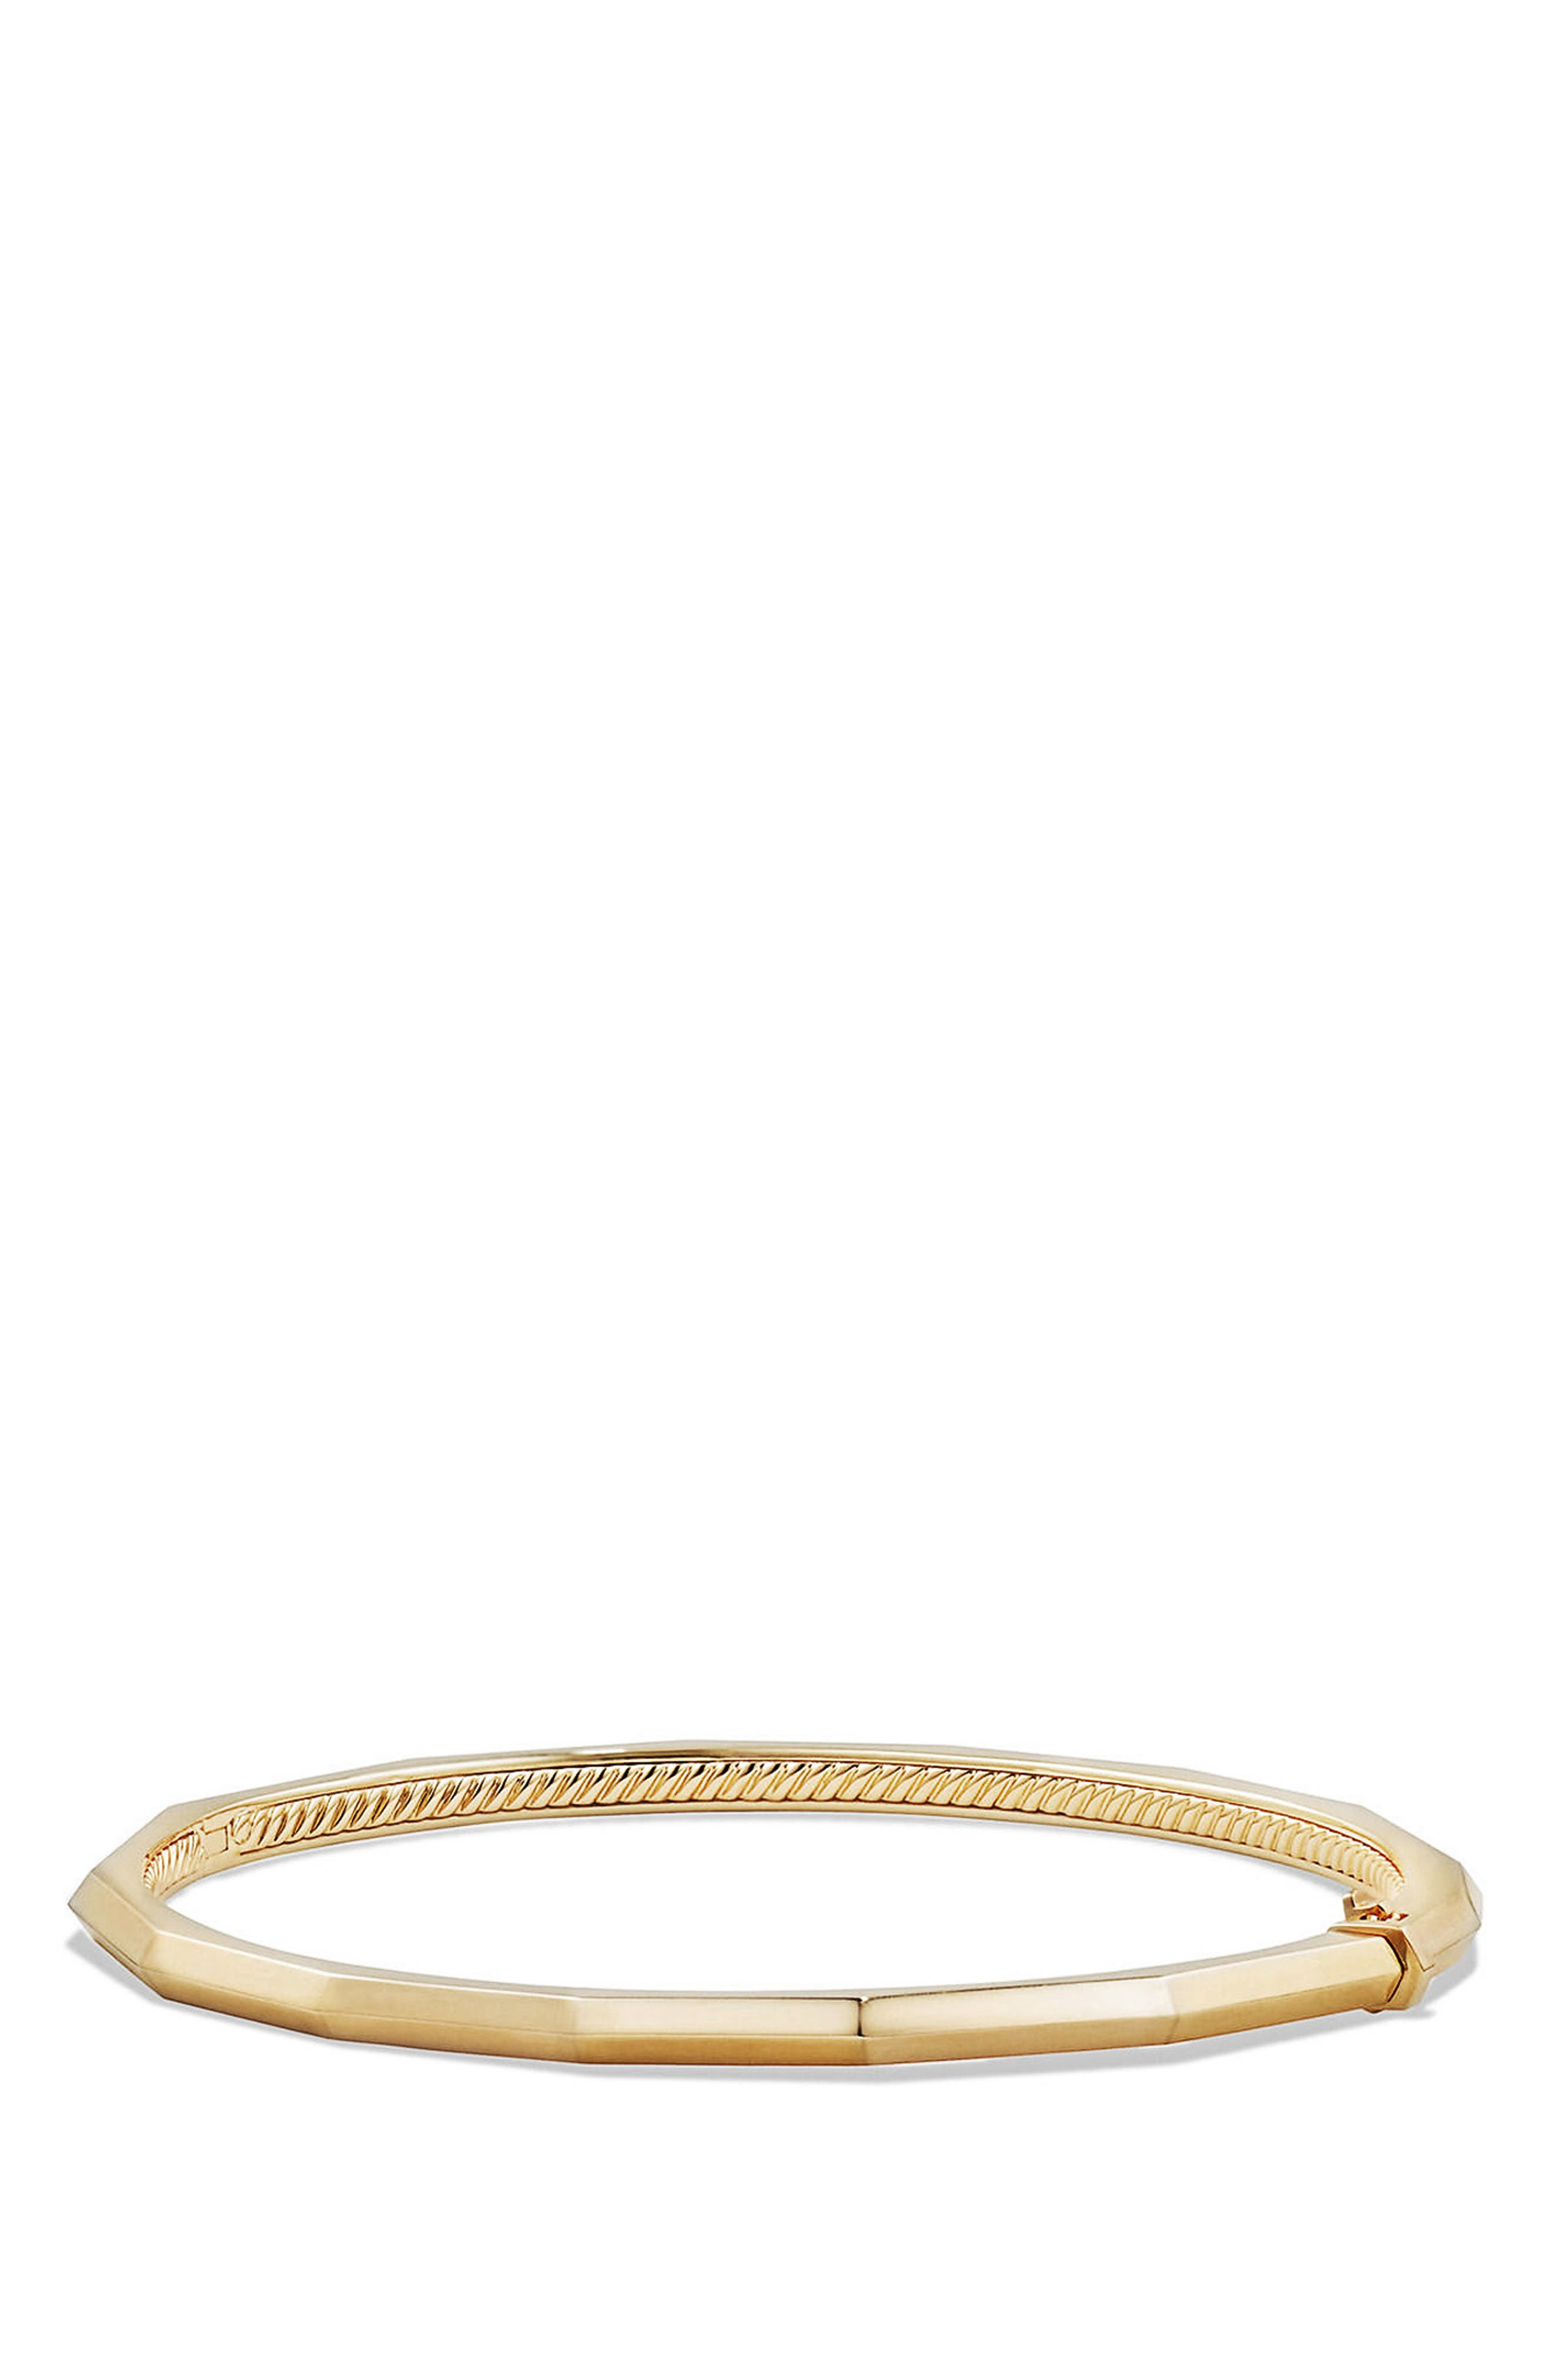 Stax Faceted Bracelet,                         Main,                         color, YELLOW GOLD